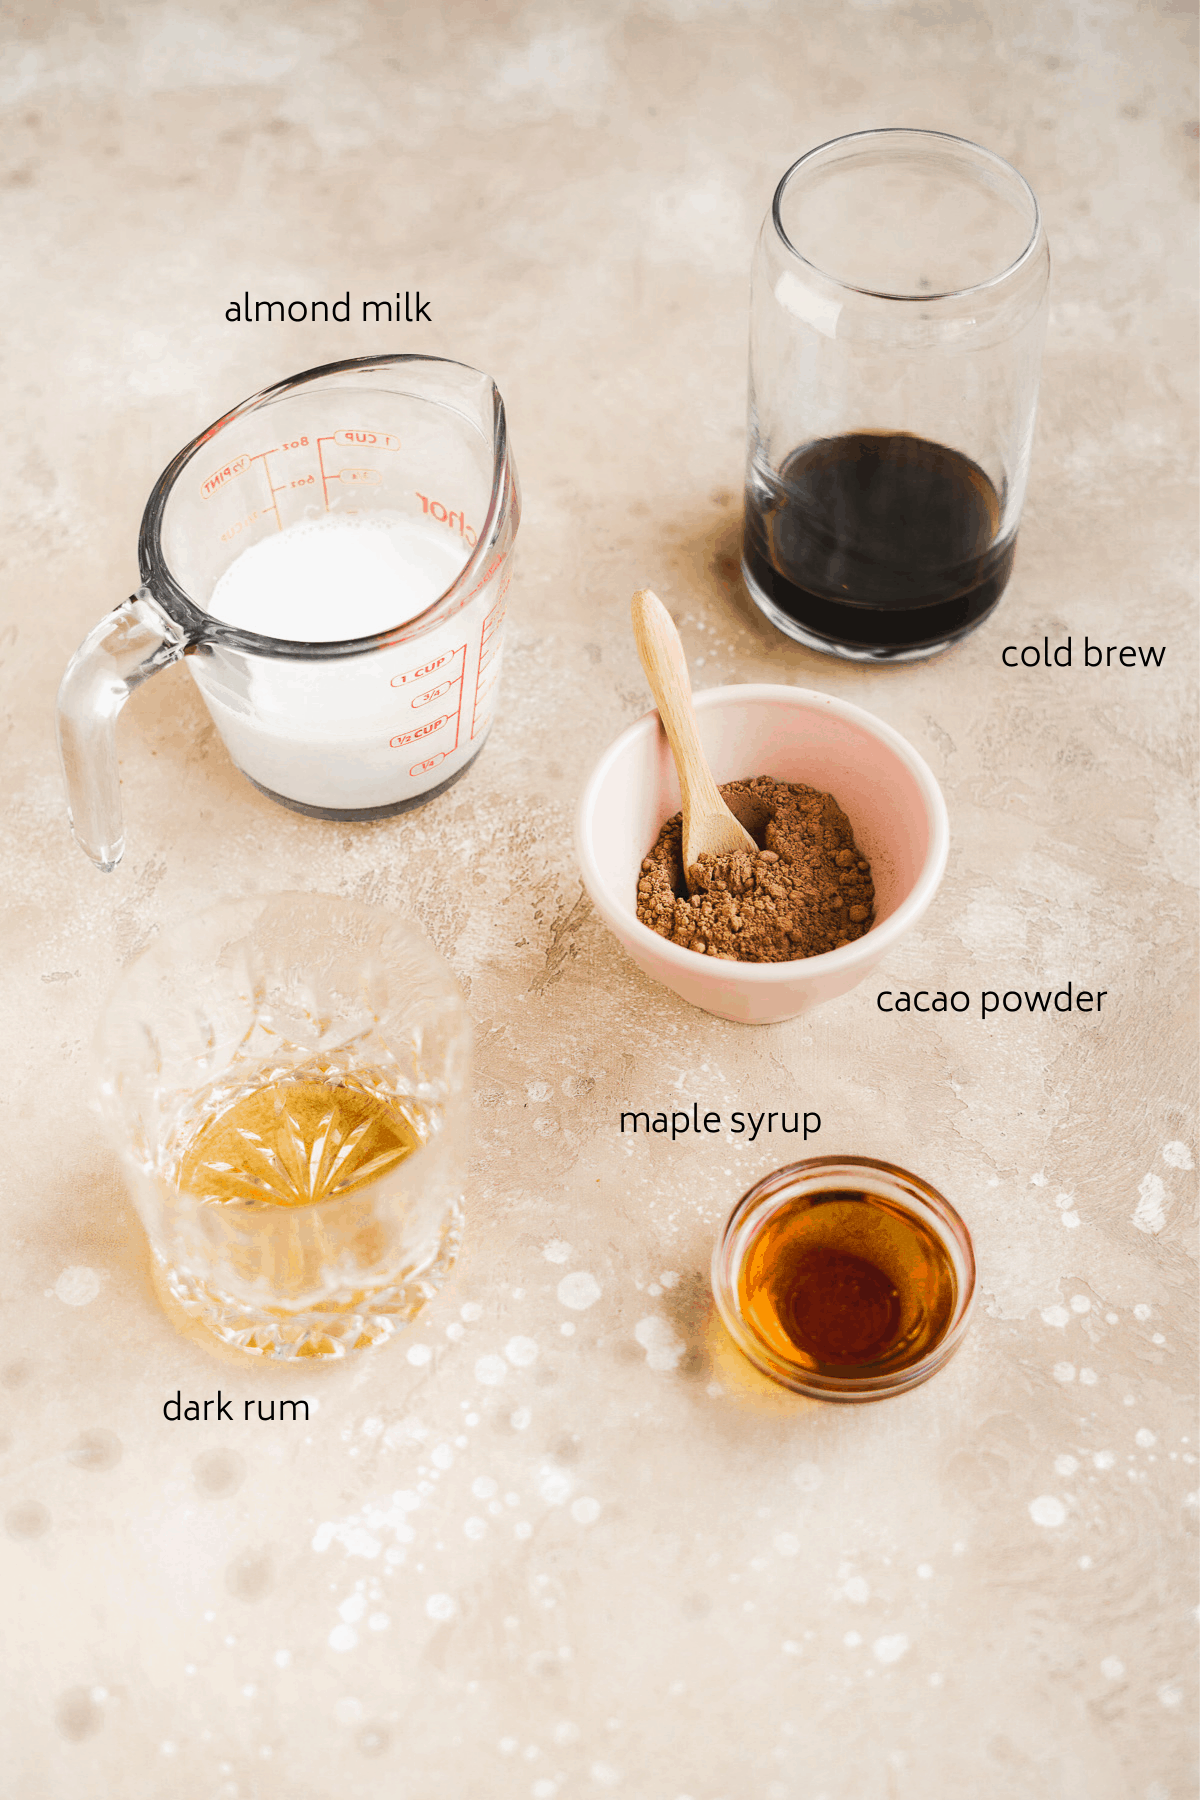 Image of ingredients on a tan surface with labels.